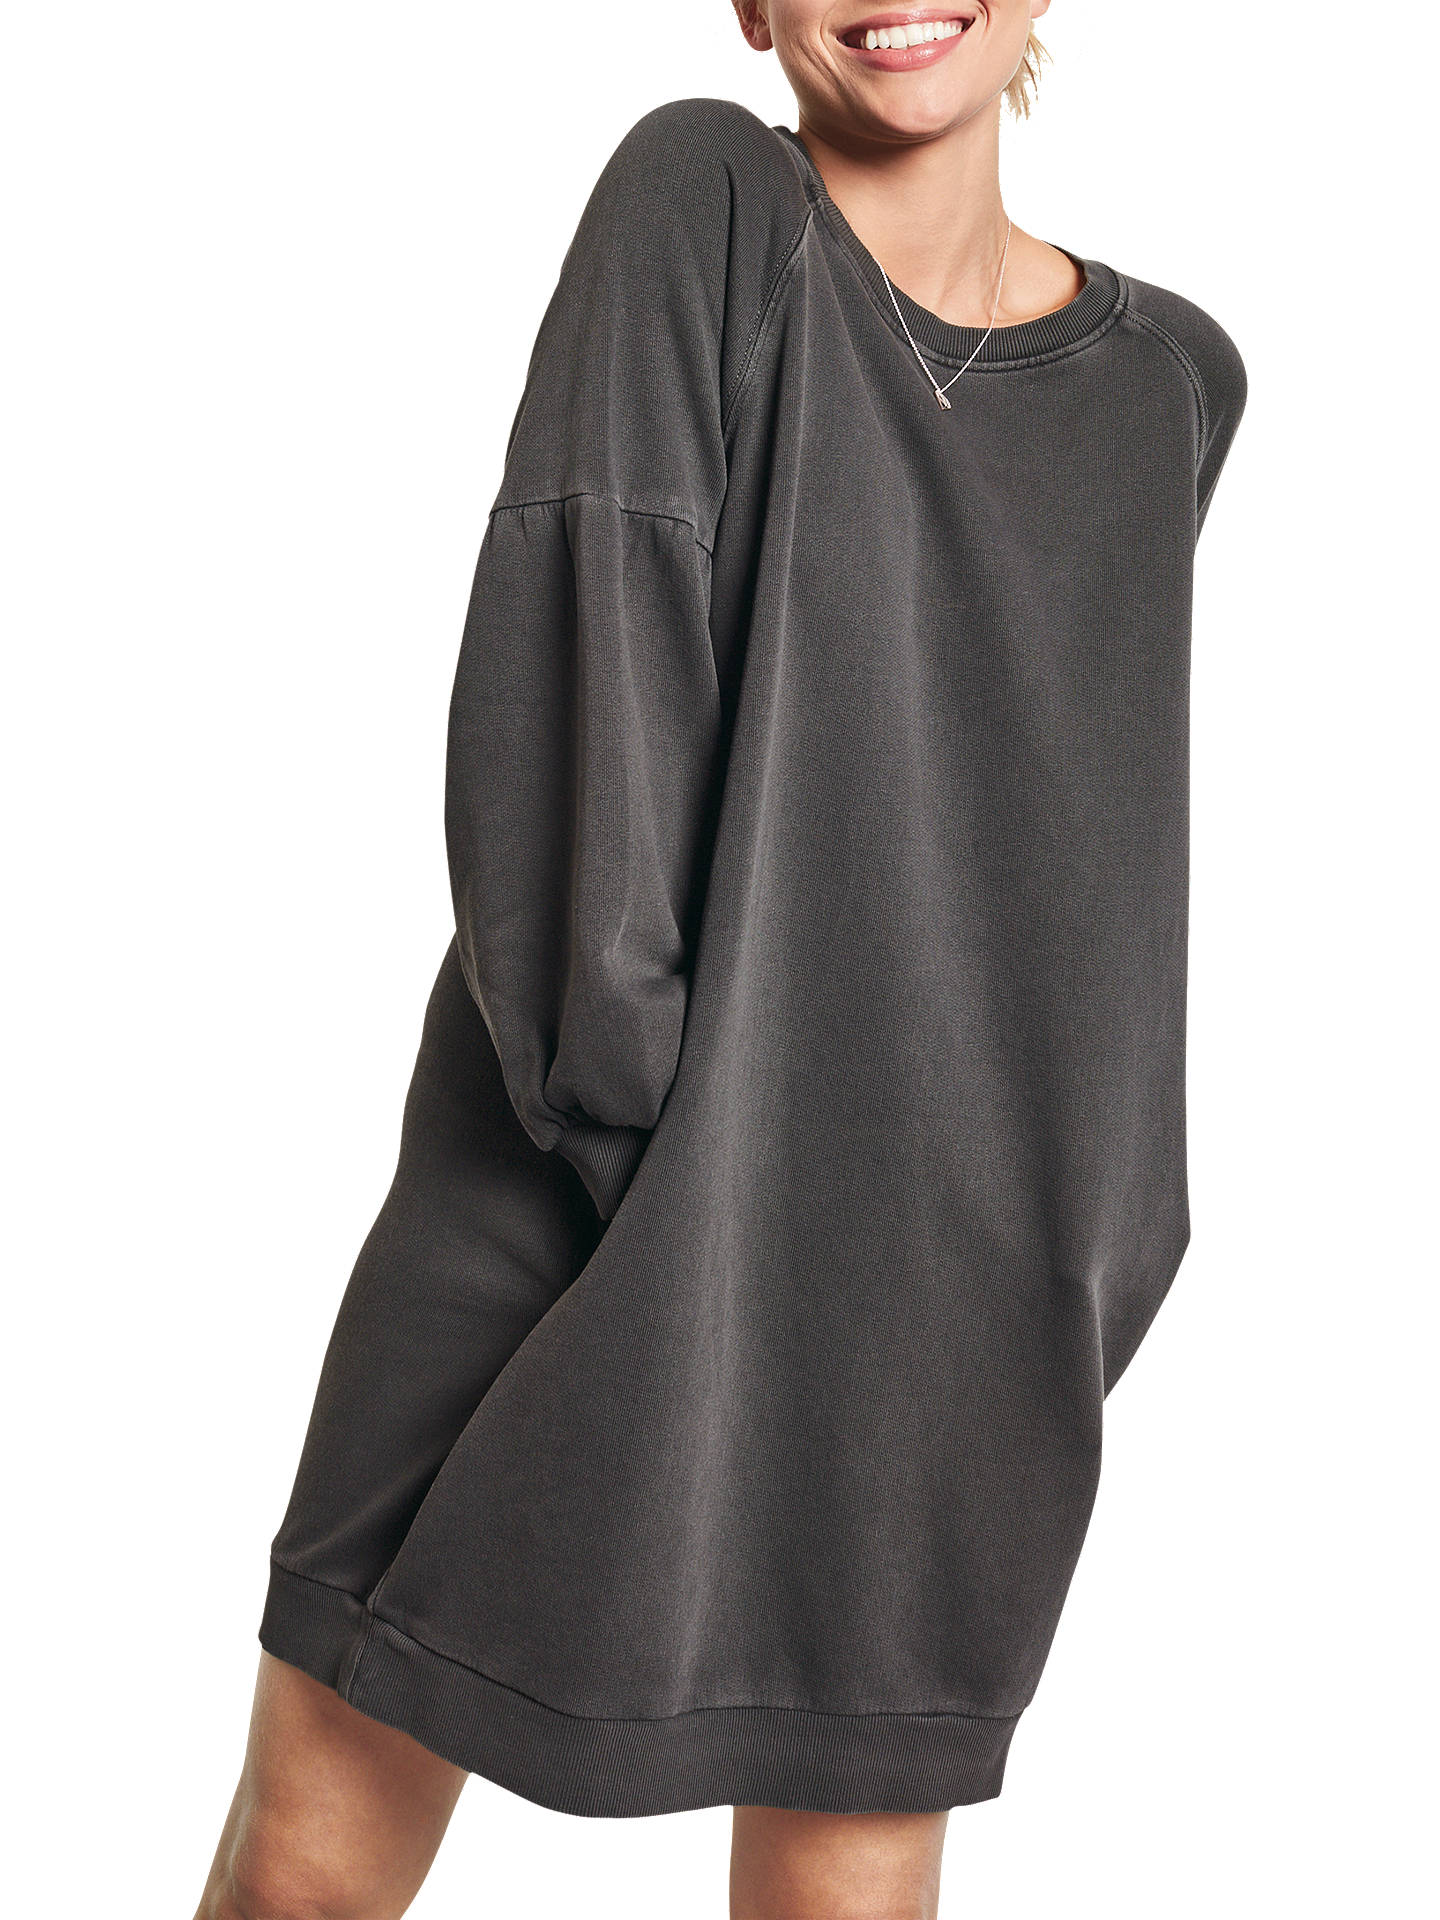 446649d77c77 ... Buy hush Puff Sleeve Sweatshirt Dress, Washed Black, XS Online at  johnlewis.com